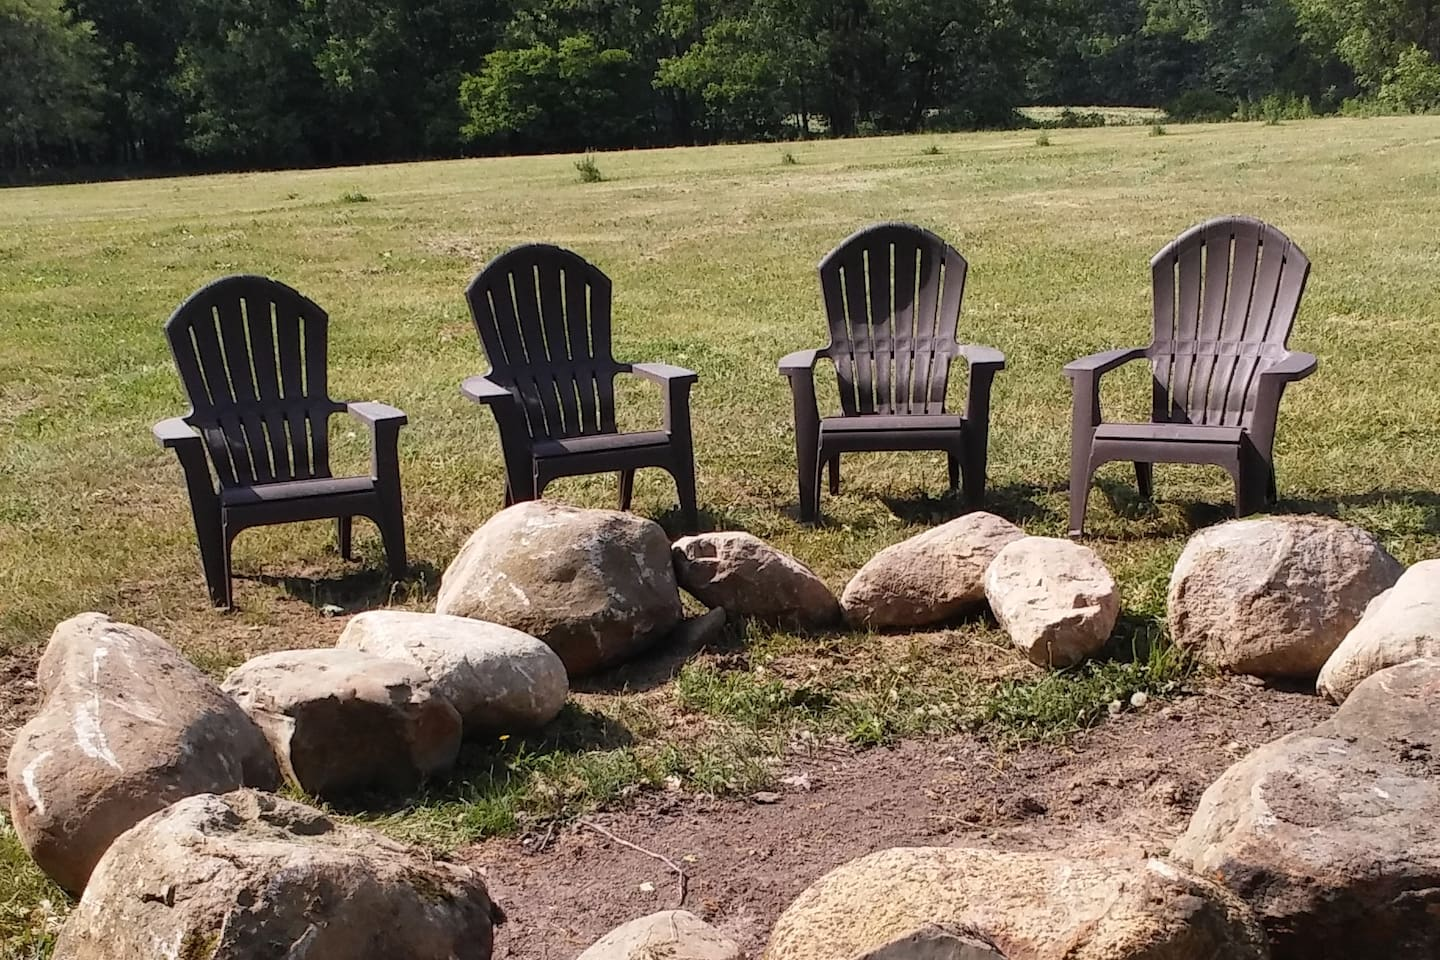 Unwind with some local wine or fall cider with a camp fire and friends.    Enjoy the stars and listen to the peepers, crickets and owls.